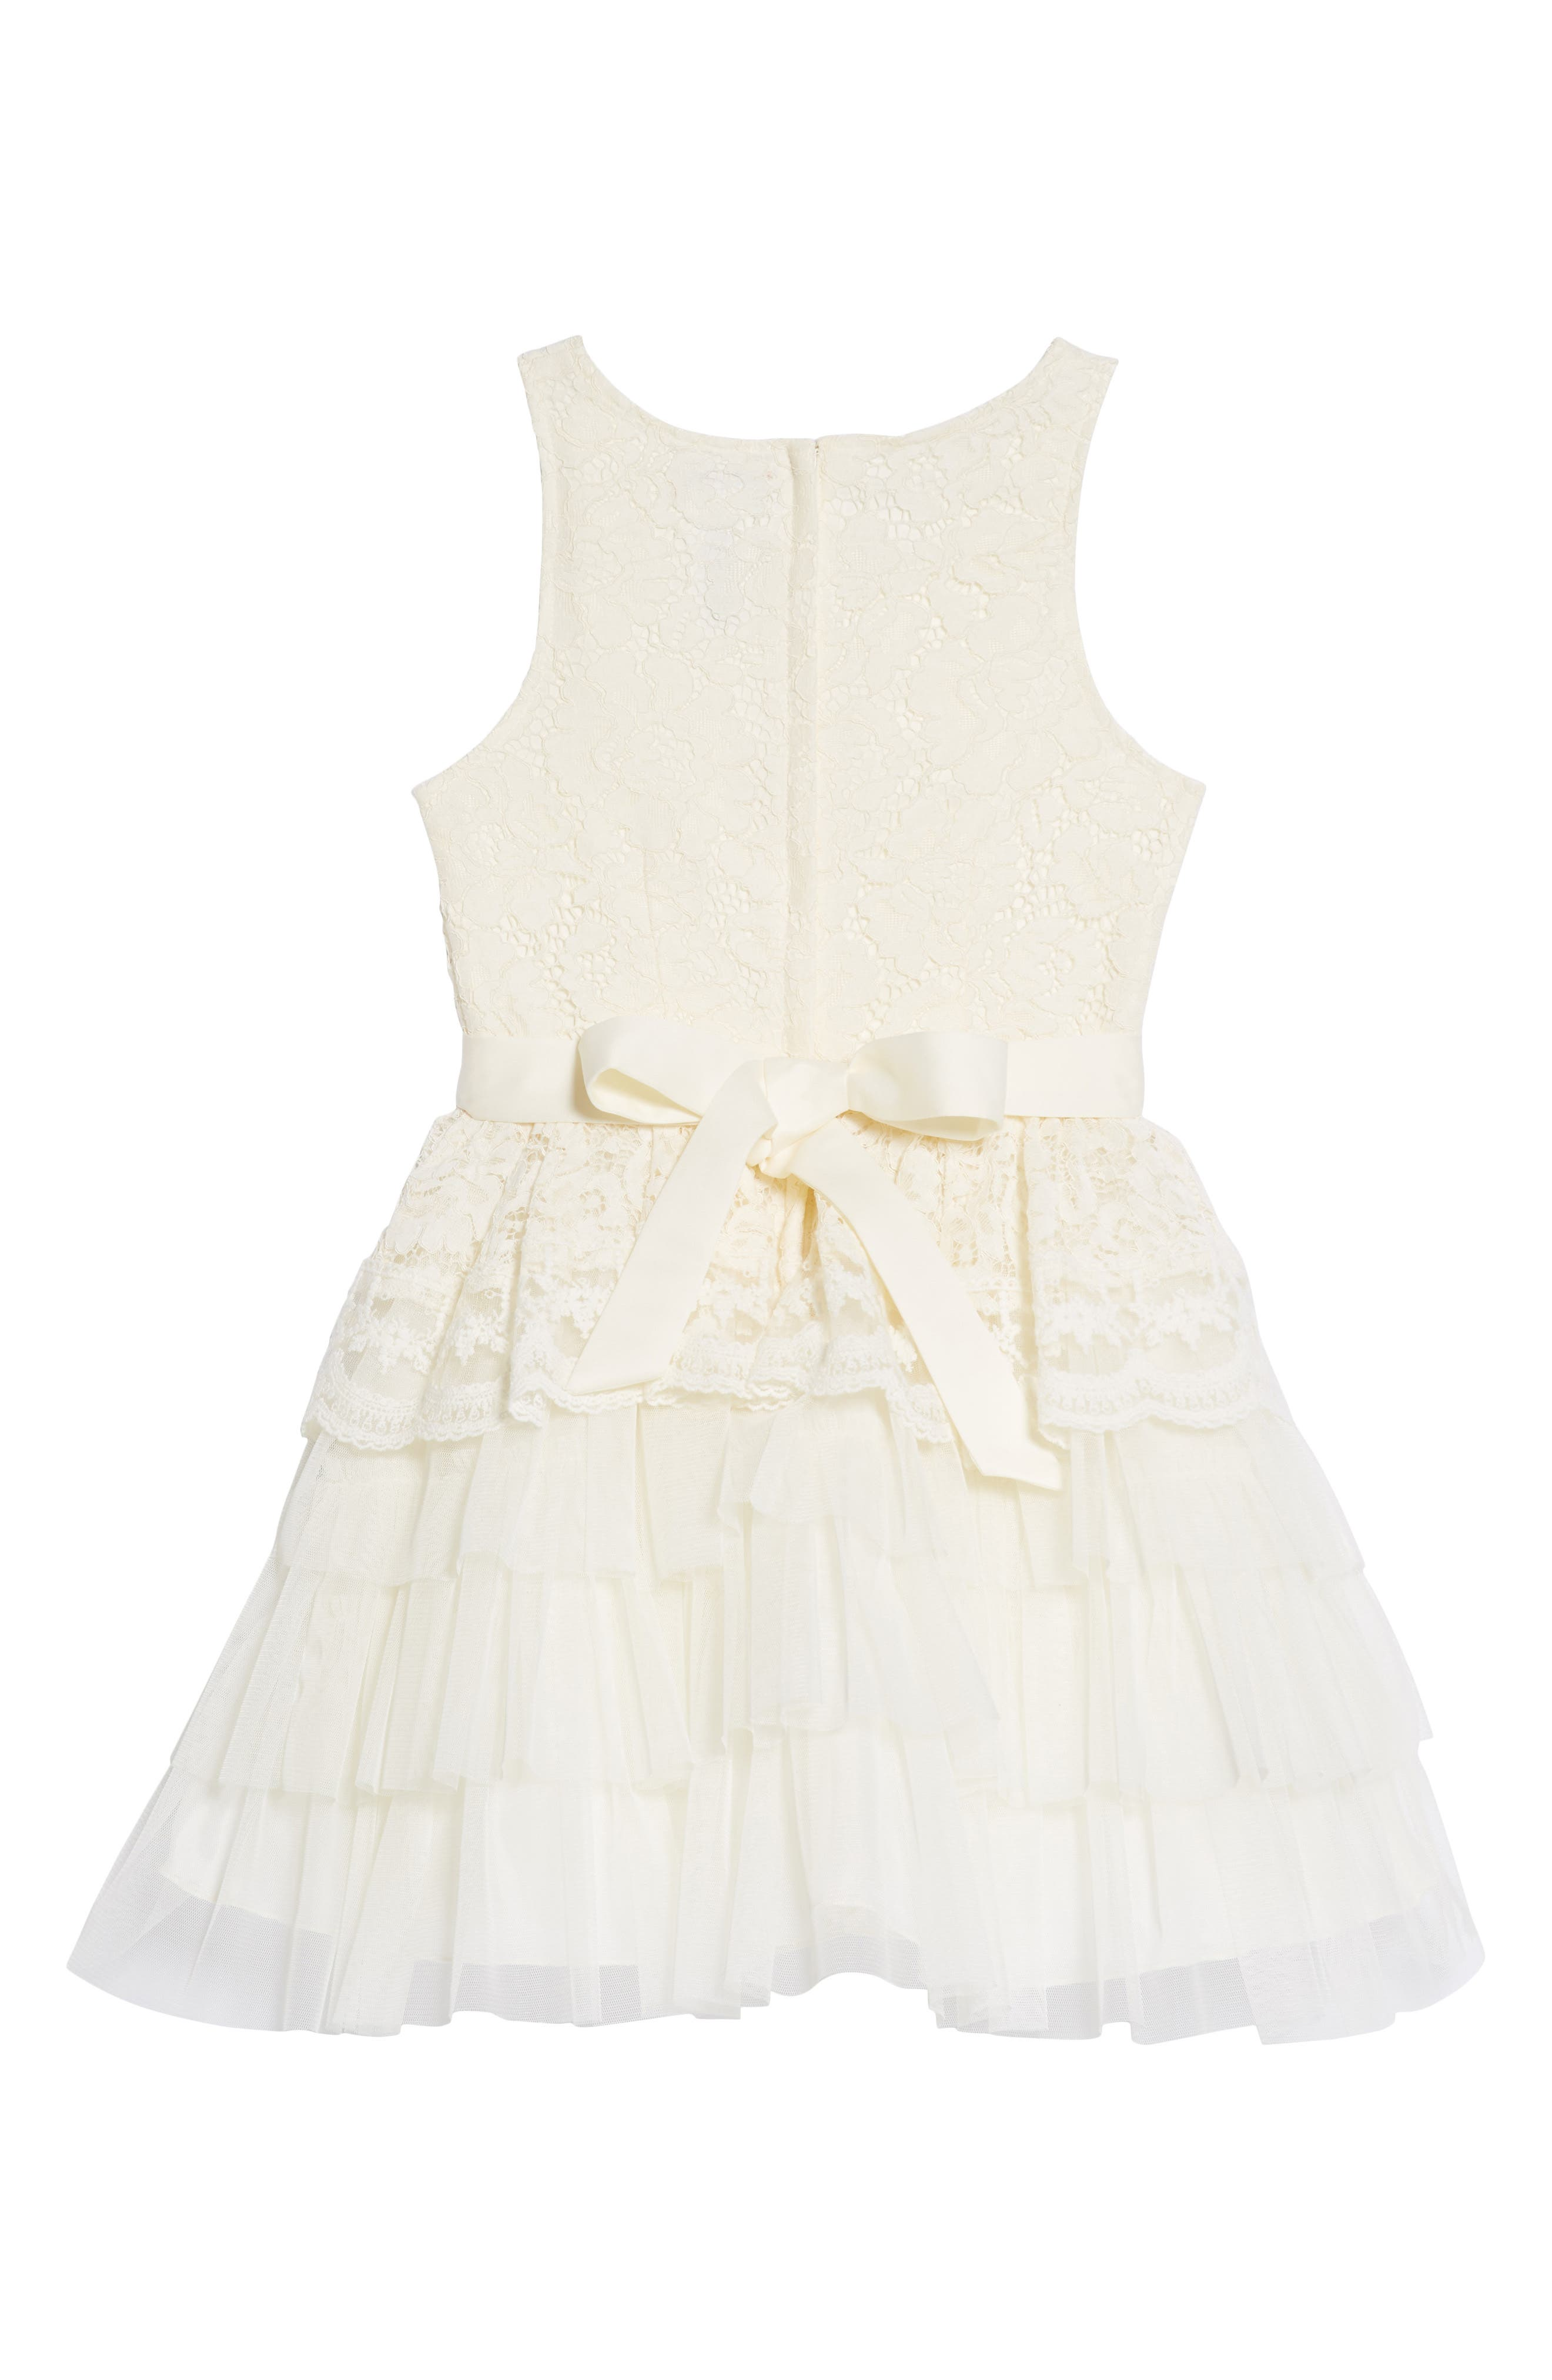 Tiered Lace & Tulle Dress,                             Alternate thumbnail 2, color,                             Cream